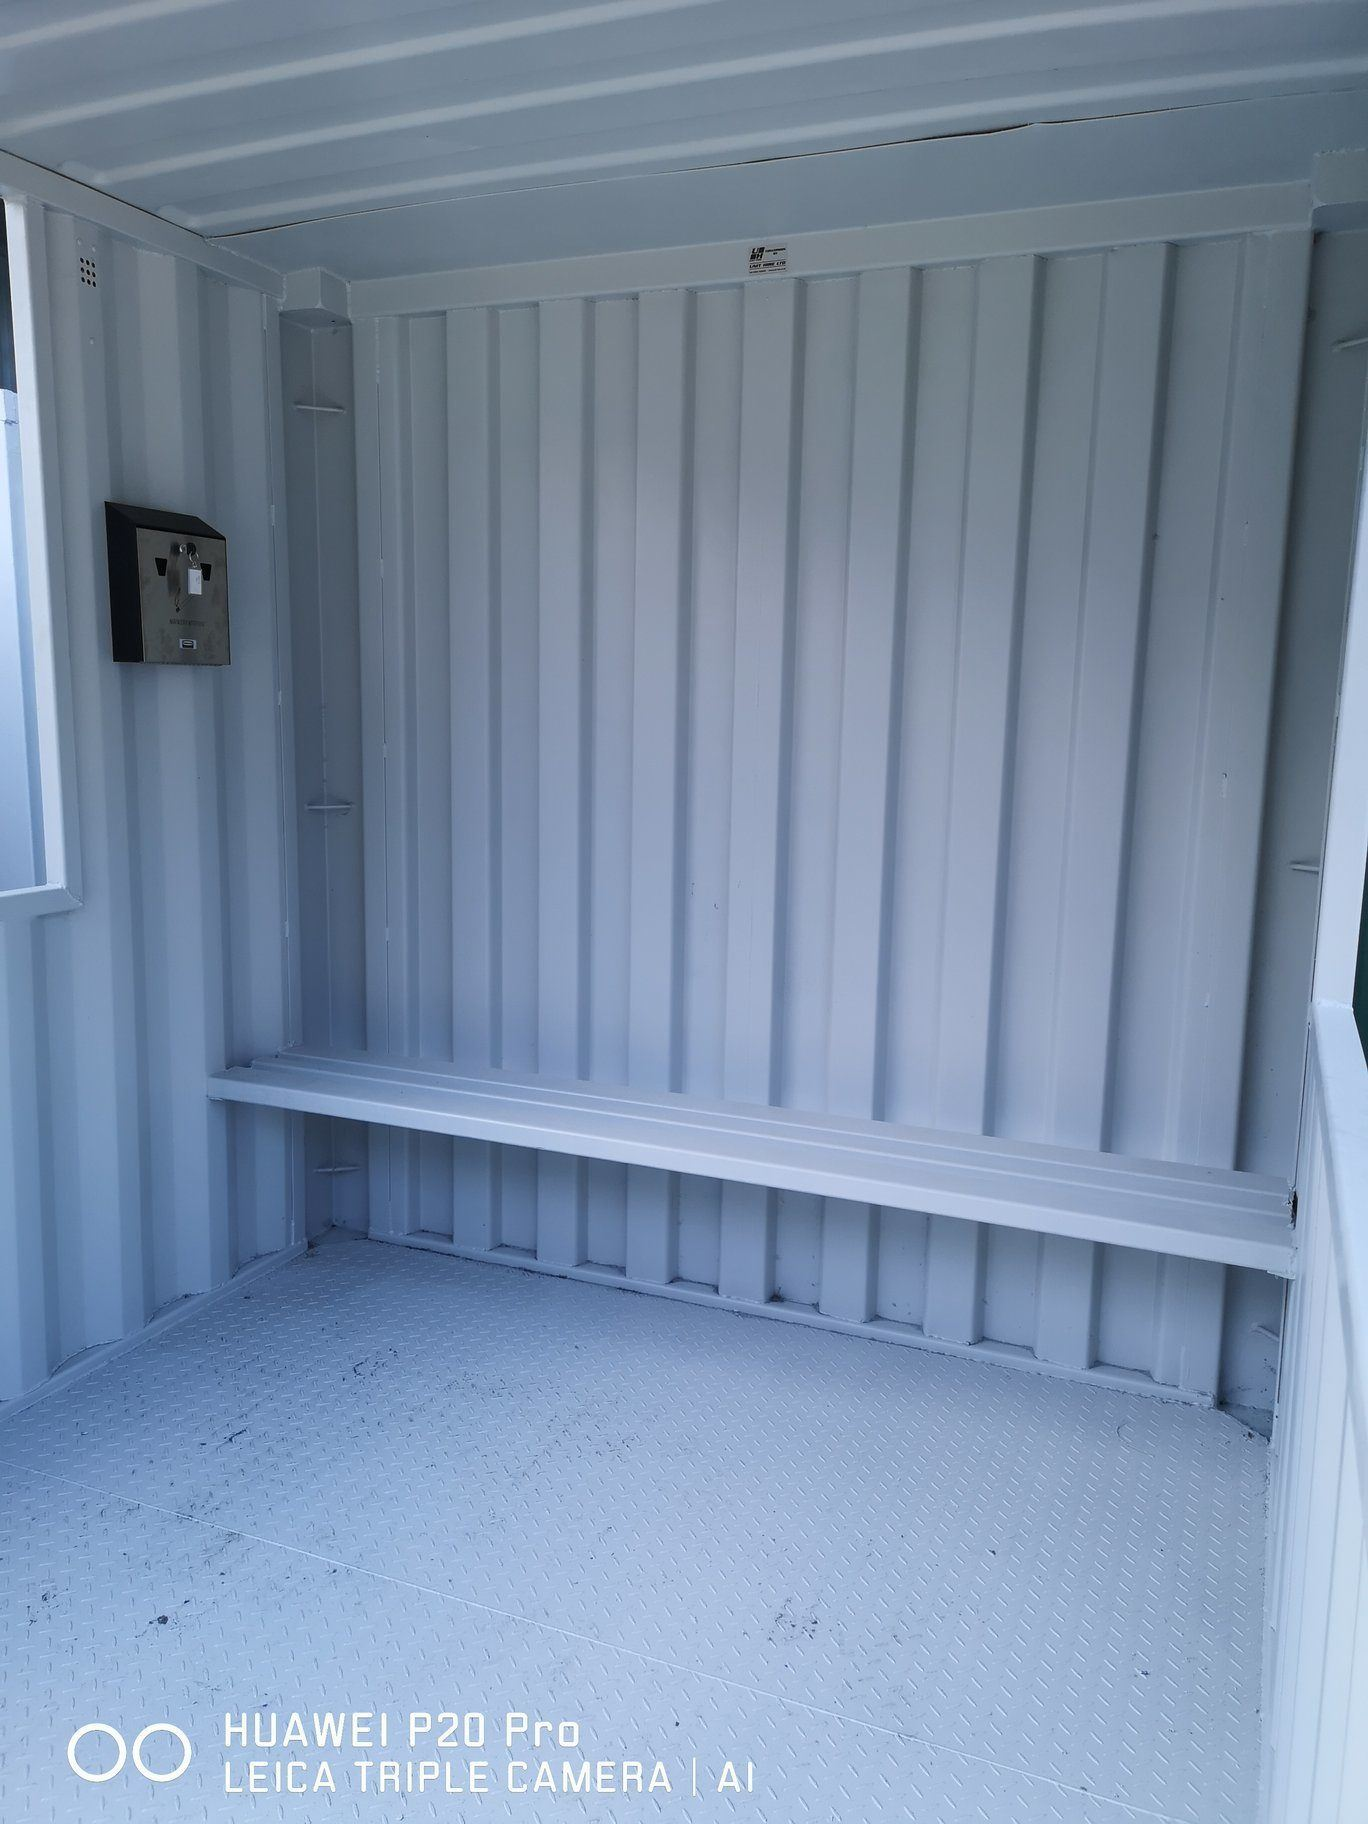 Inside of smoking shelter container with bench and cigarette bin